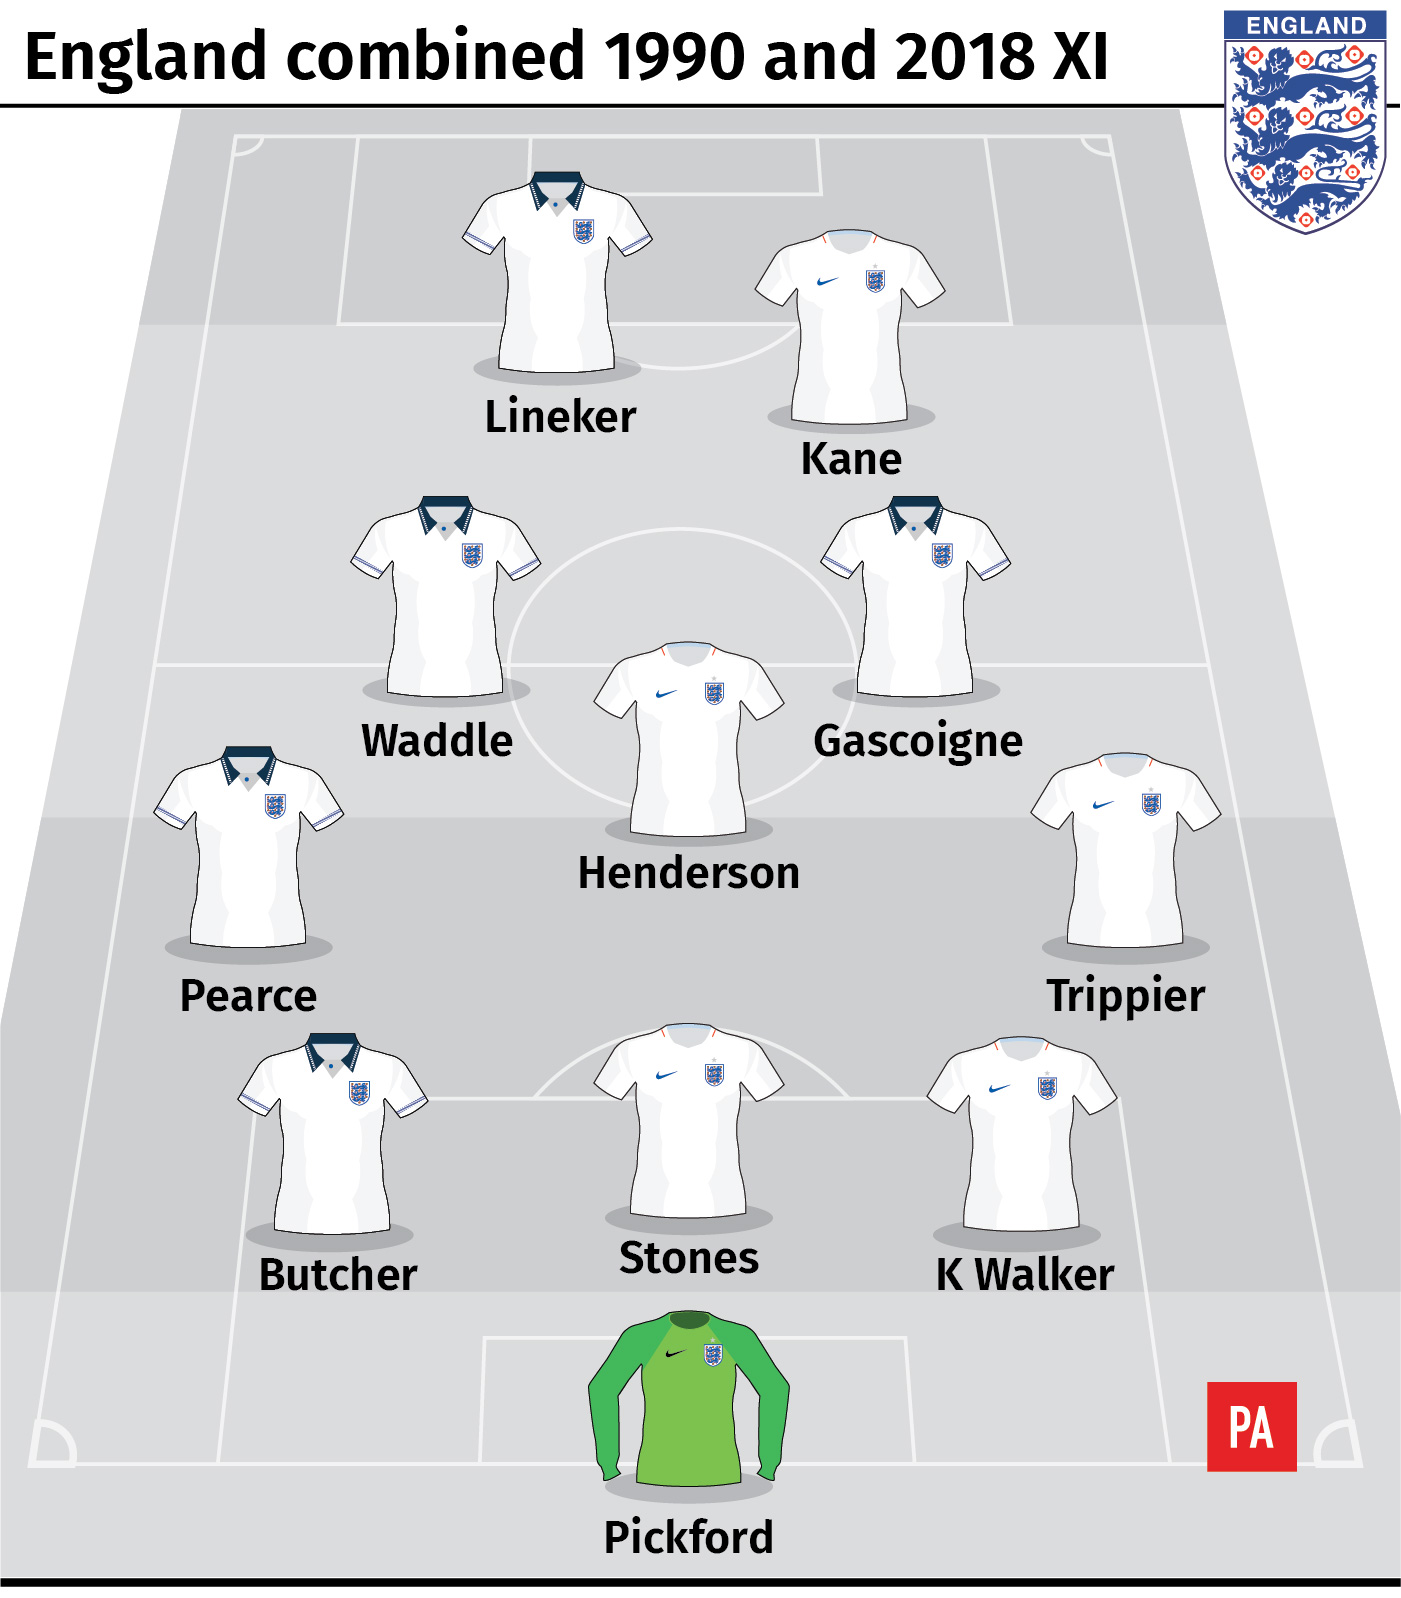 A combined England 1990 and 2018 XI